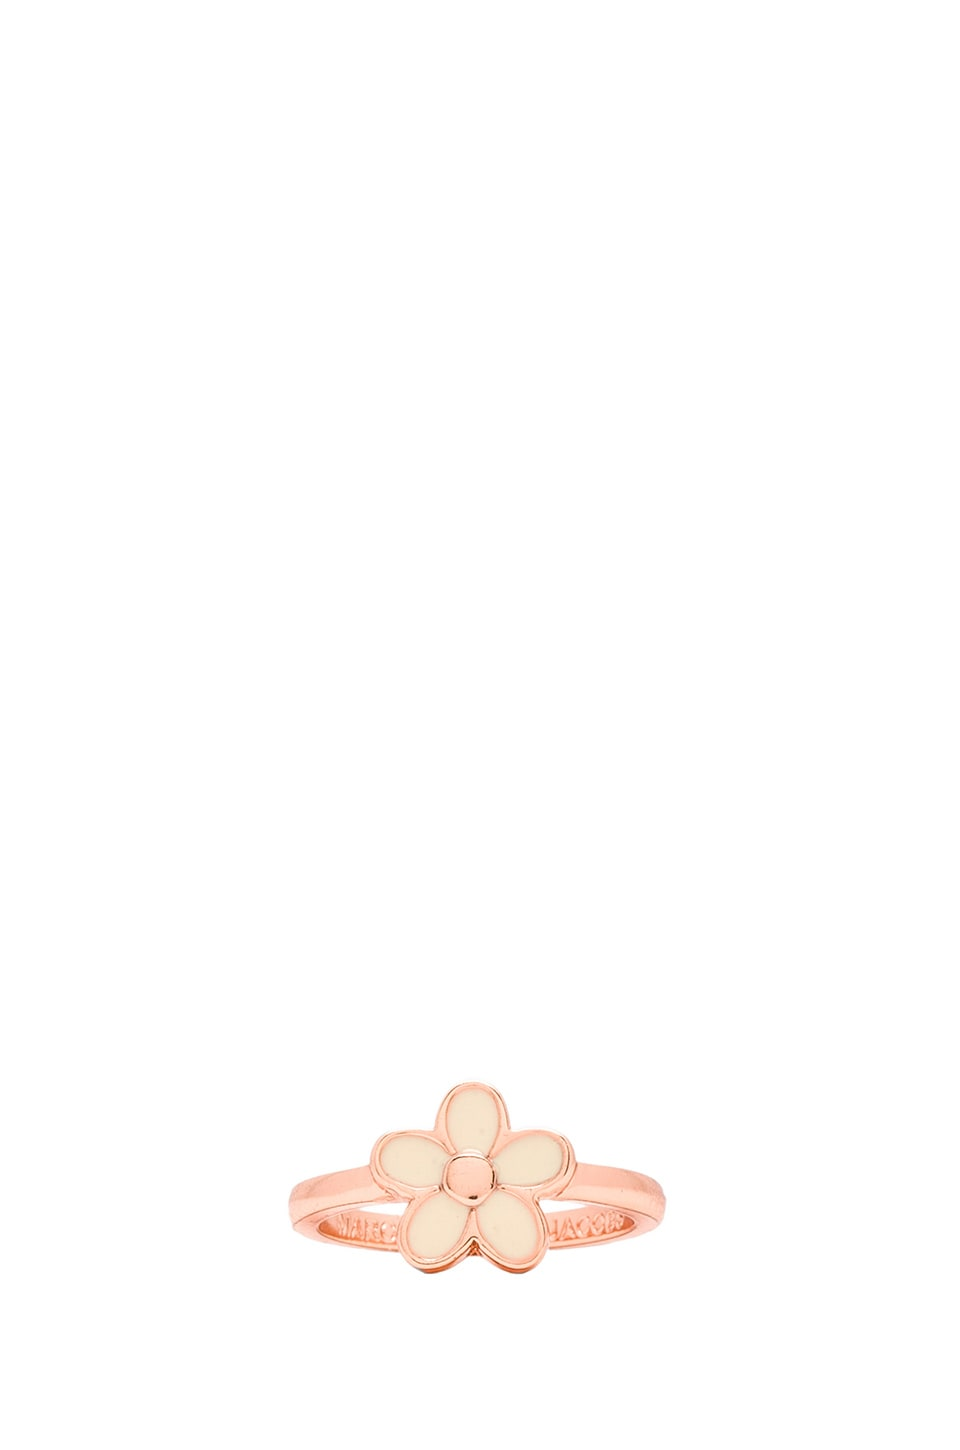 Marc by Marc Jacobs Grab & Go Enamel Daisy Ring in Cream & Rose Gold